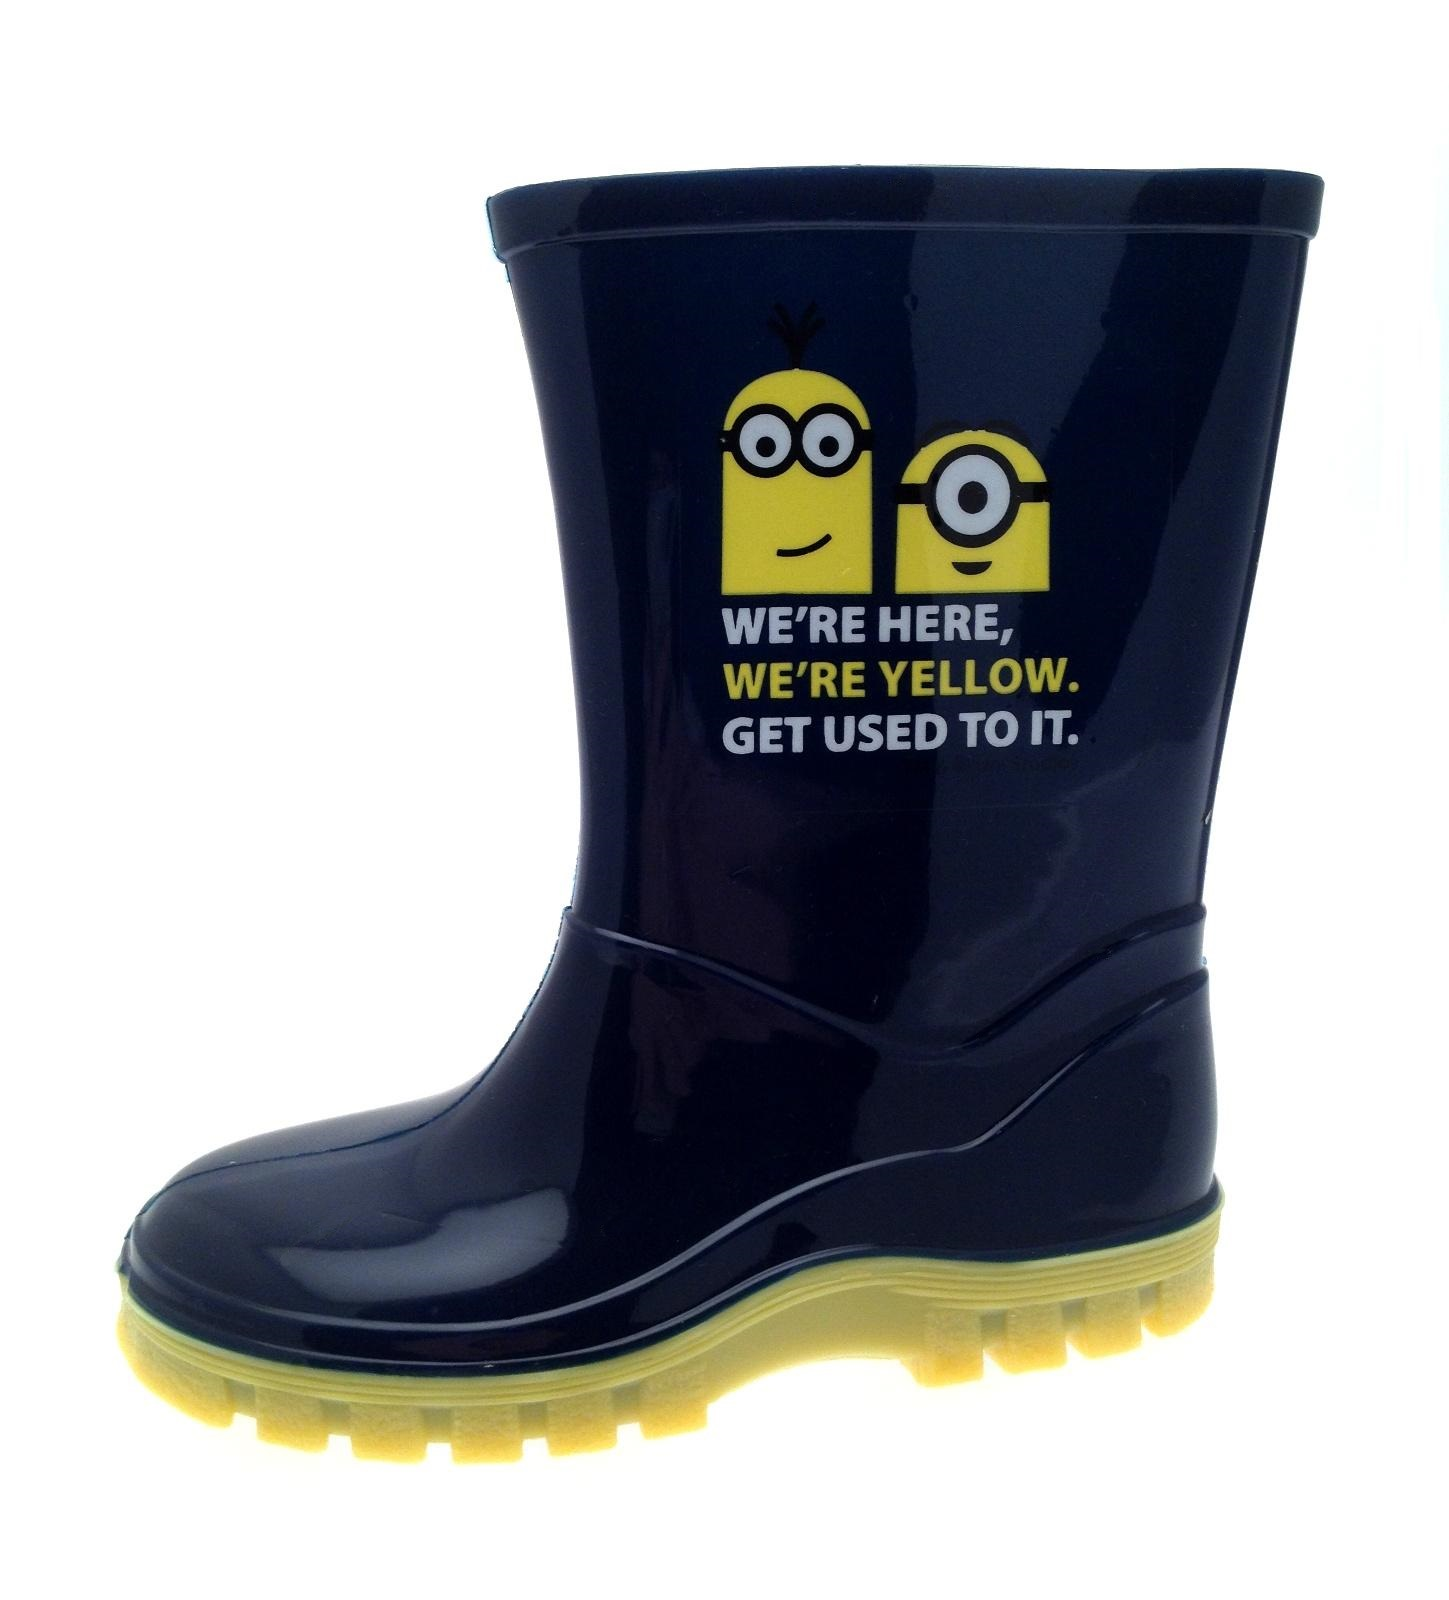 Choose from our selection of brilliant wellies for kids of all ages. Our range of kids' wellies are made for stomping and exploring the great outdoors. Discover our selection of different sized wellies for kids of all ages.